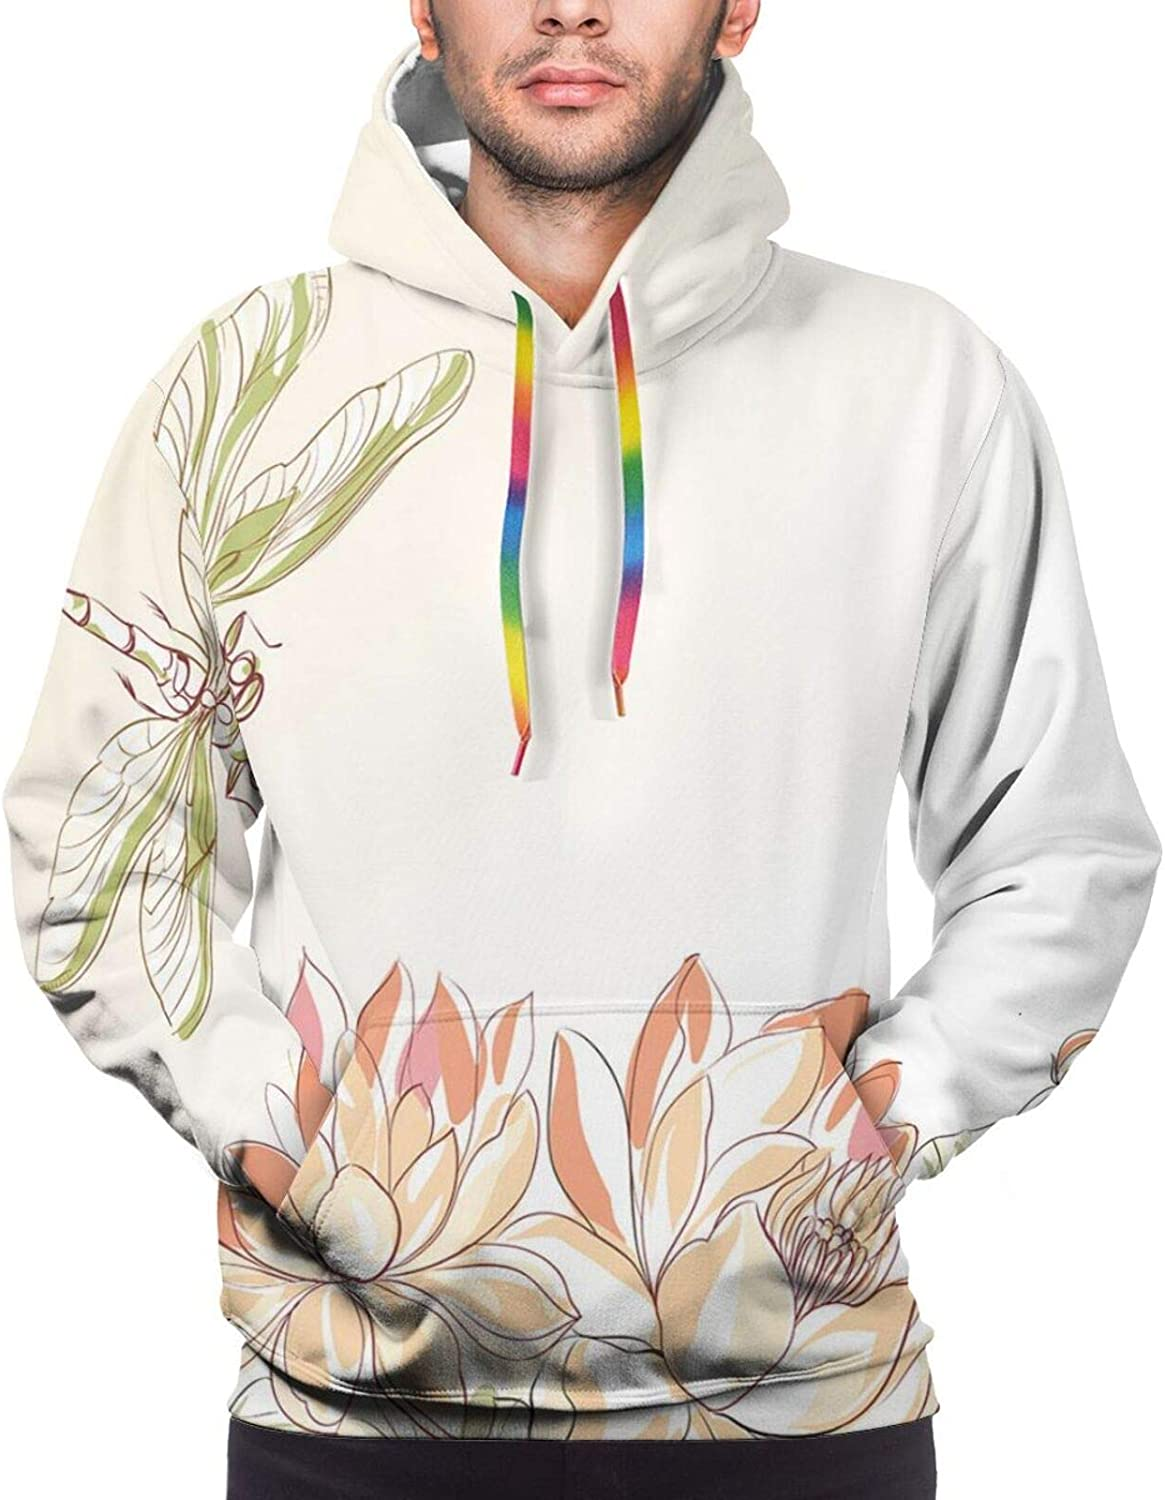 Men's Hoodies Sweatshirts,Lots of Different Size Roses Like Garden Artistic Creative Graphic Design for Sweetheart